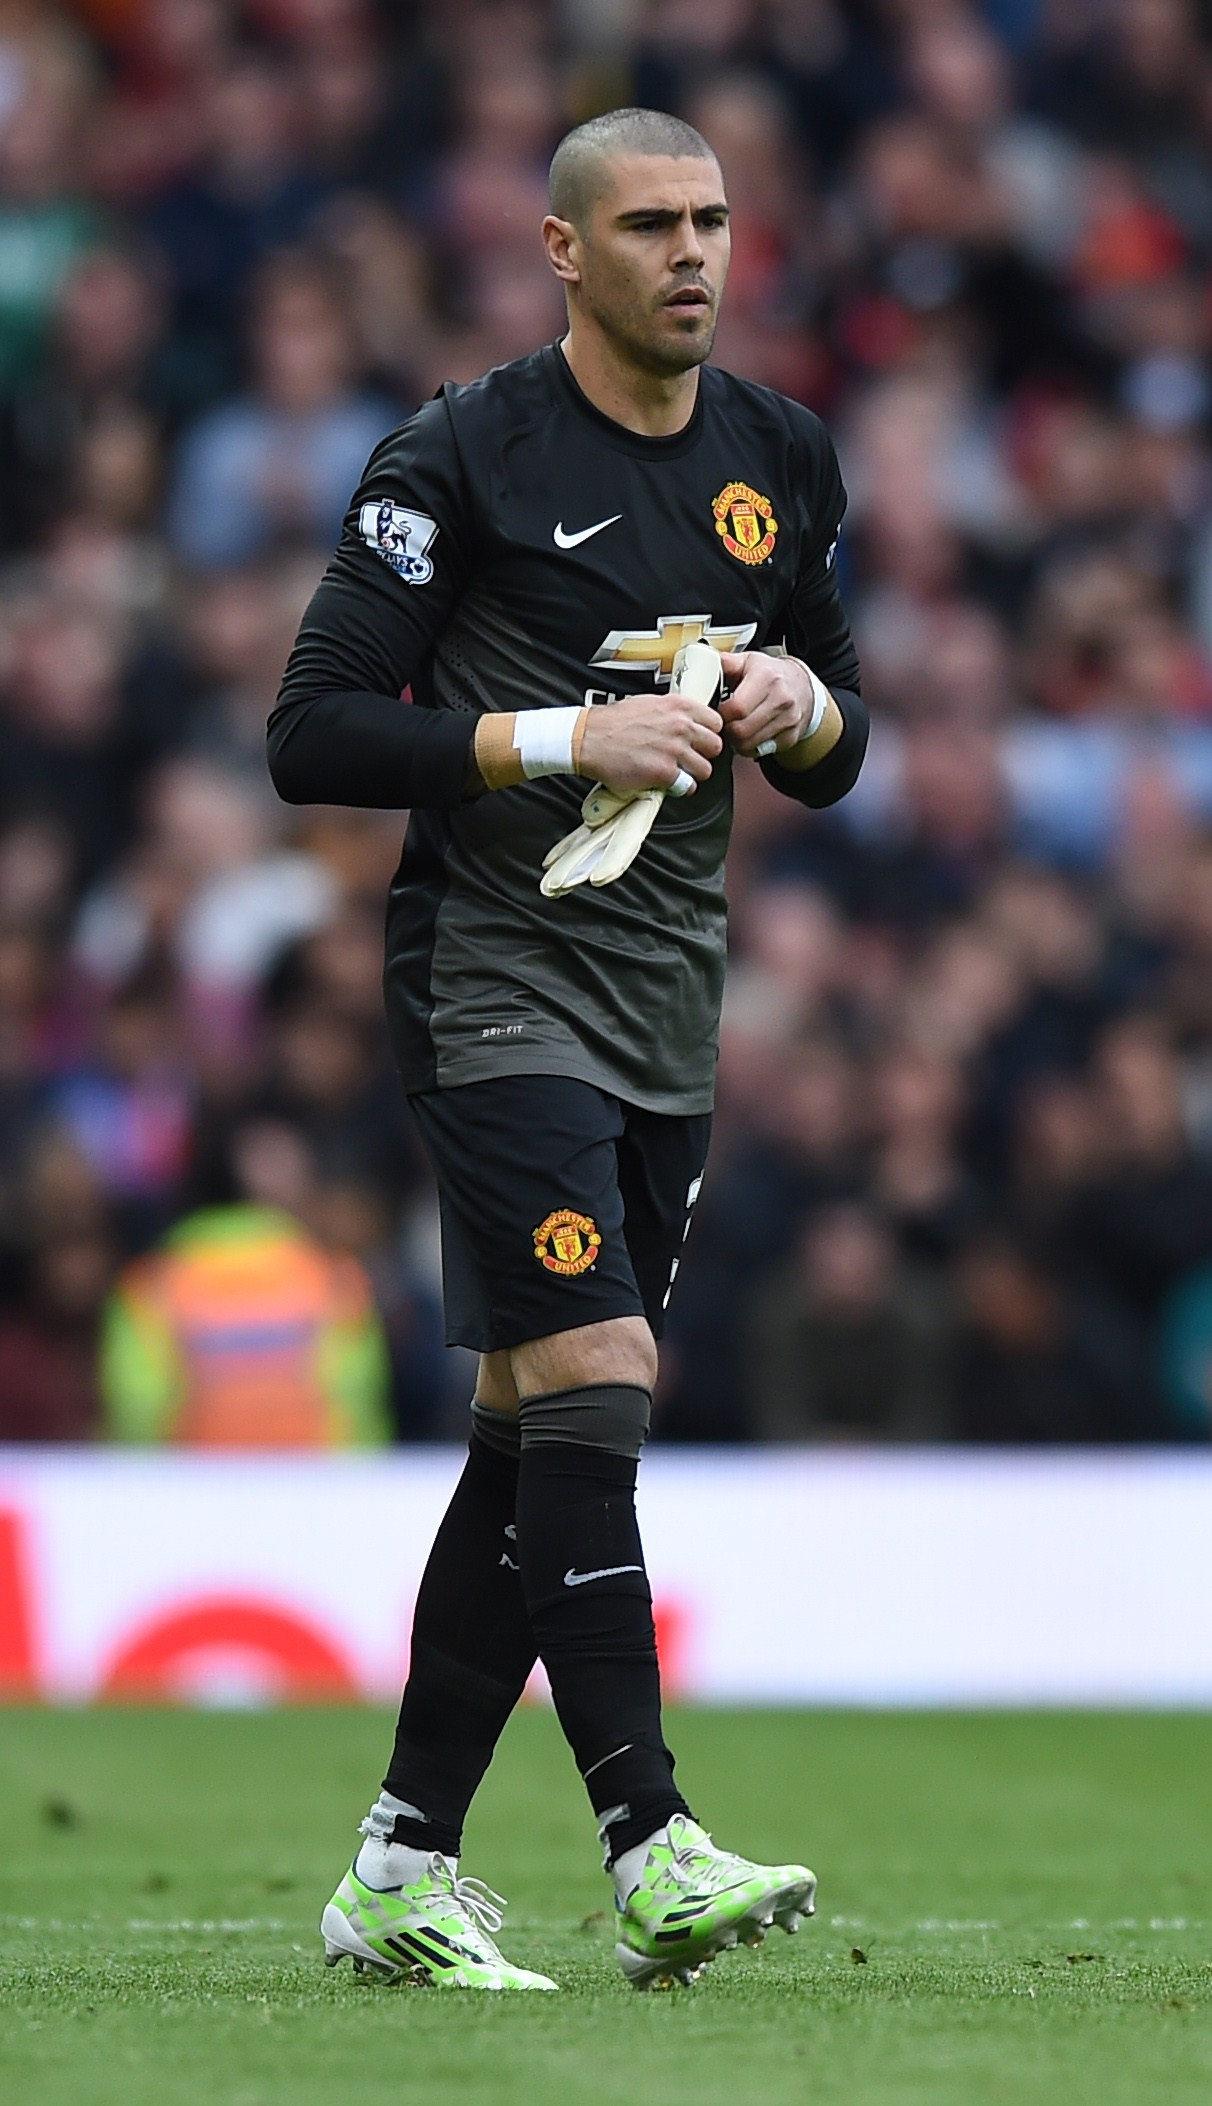 Victor Valdes delighted having made Manchester United debut